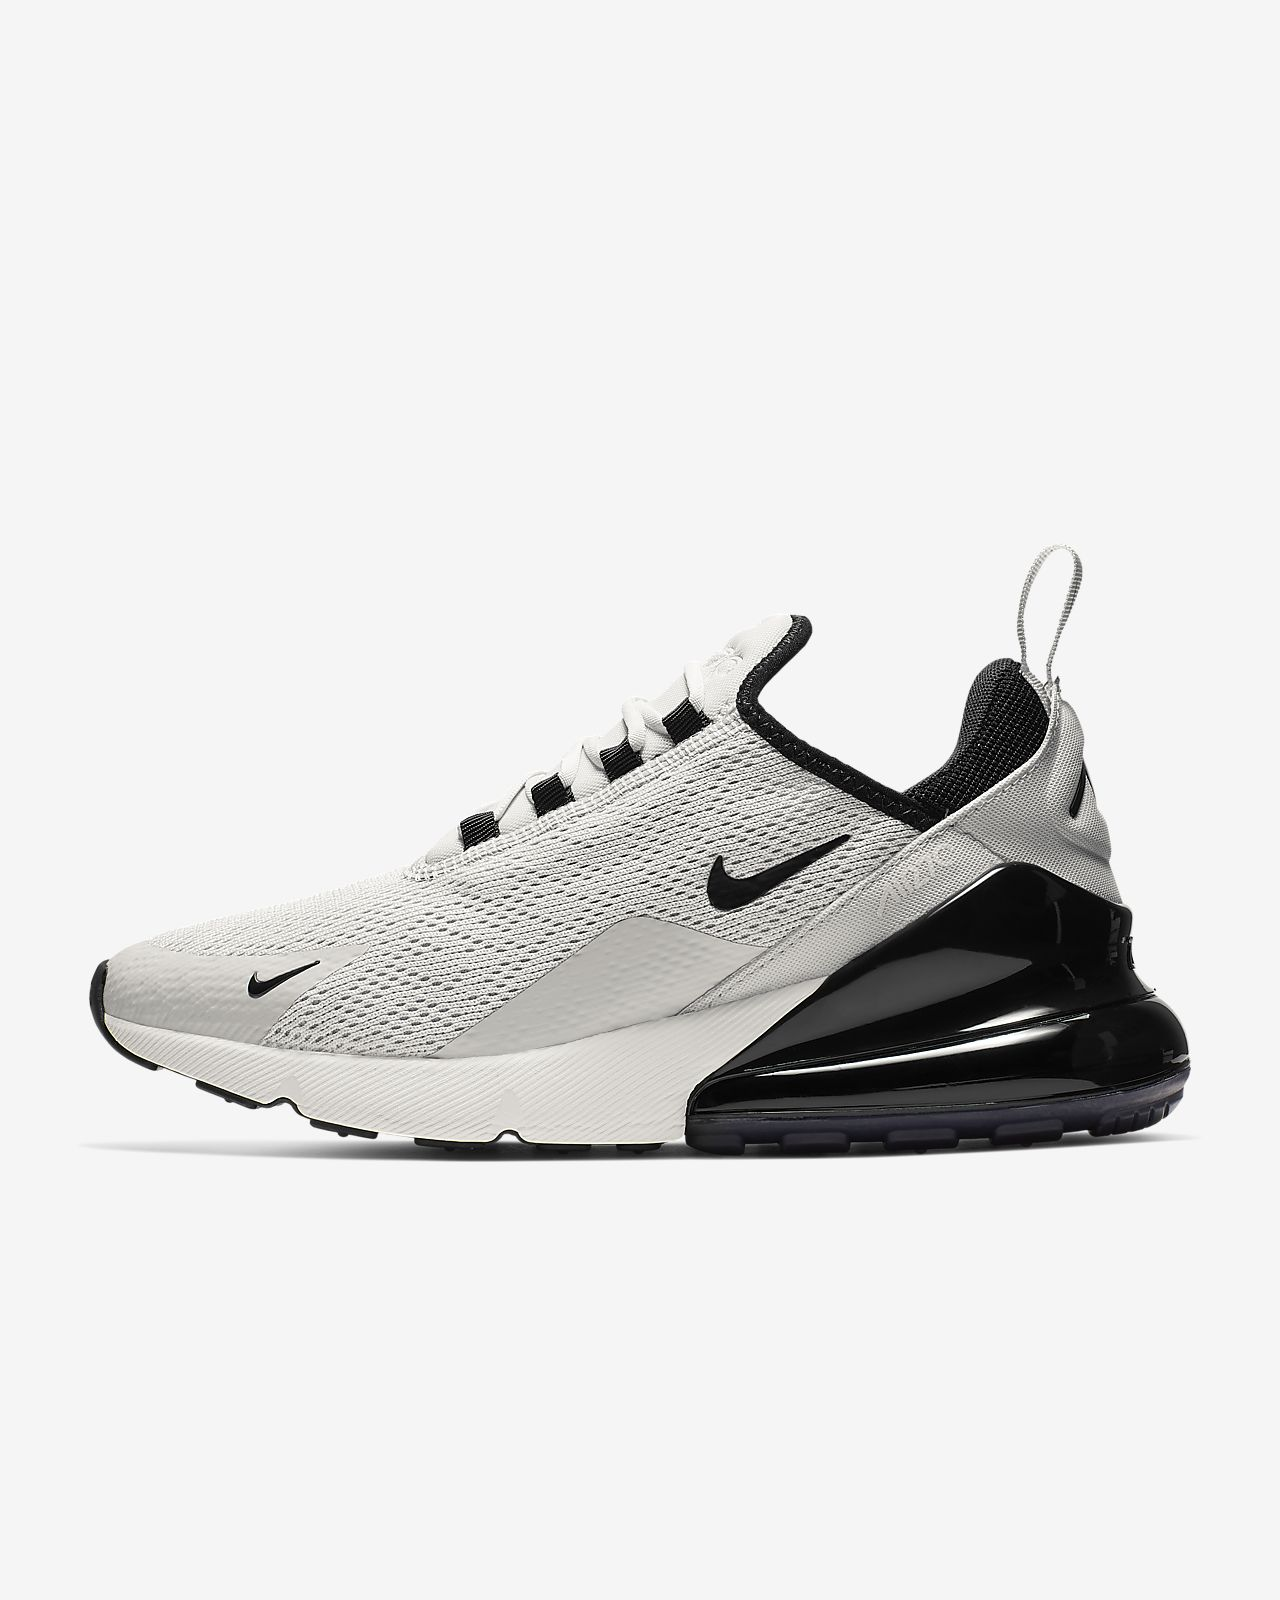 official photos b2b47 53310 ... Nike Air Max 270 Zapatillas - Mujer